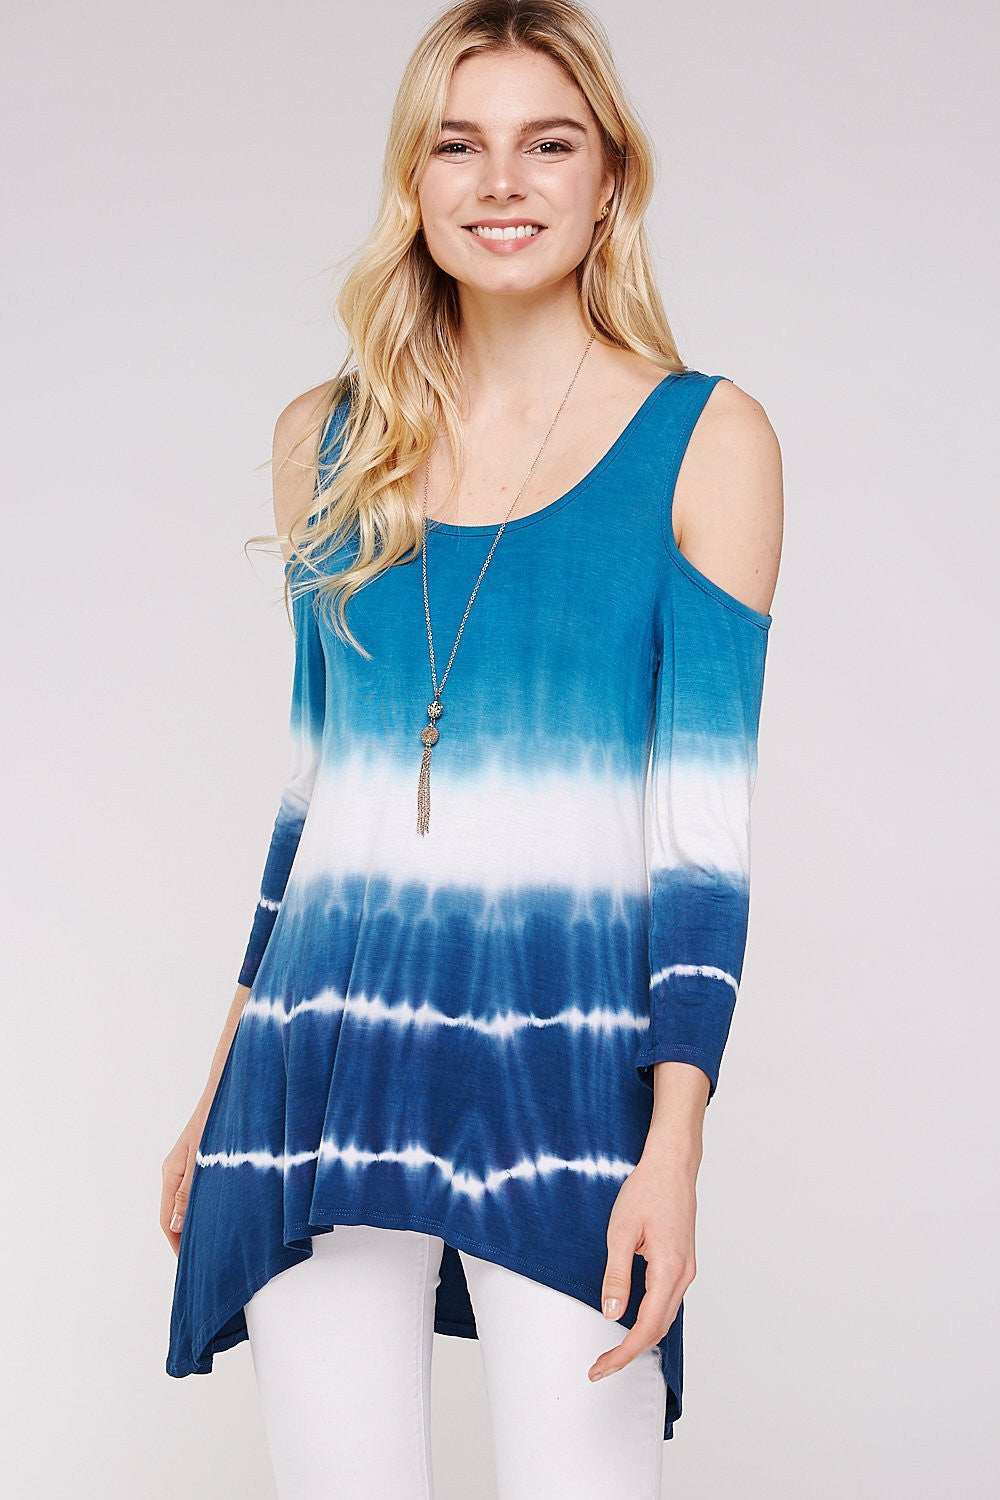 Wholesale Clothing, Online Wholesale Clothing, Women Clothing, Bohemian, Free People, tiedye, specialty wash, wholesale seller, wholesale women clothing shop, gypsy look, USA made, URBAN X APPAREL-TIE DYE-UTR5218, fashiontrend2019